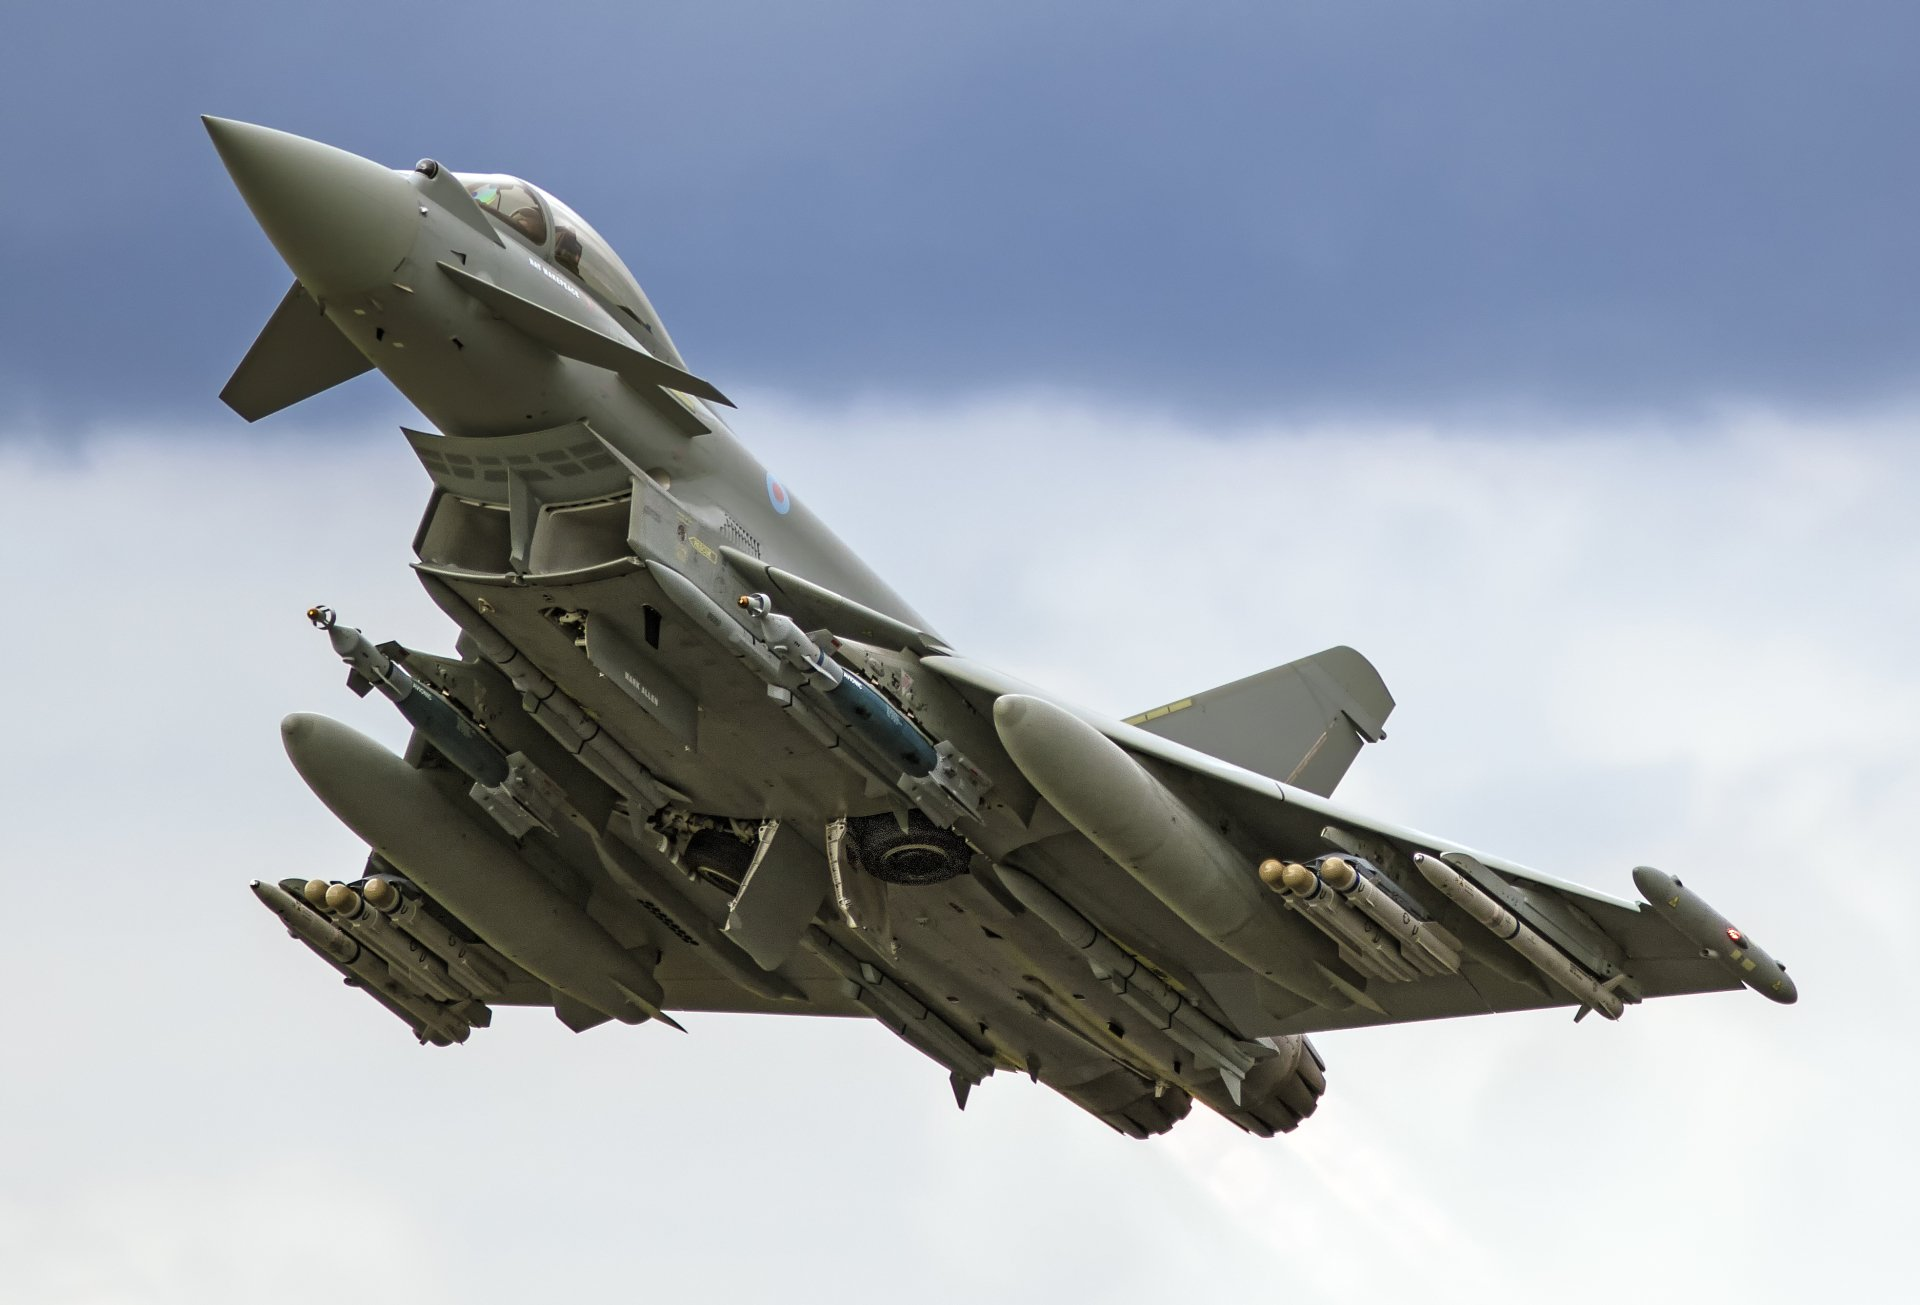 Military - Eurofighter Typhoon  Jet Fighter Aircraft Warplane Wallpaper